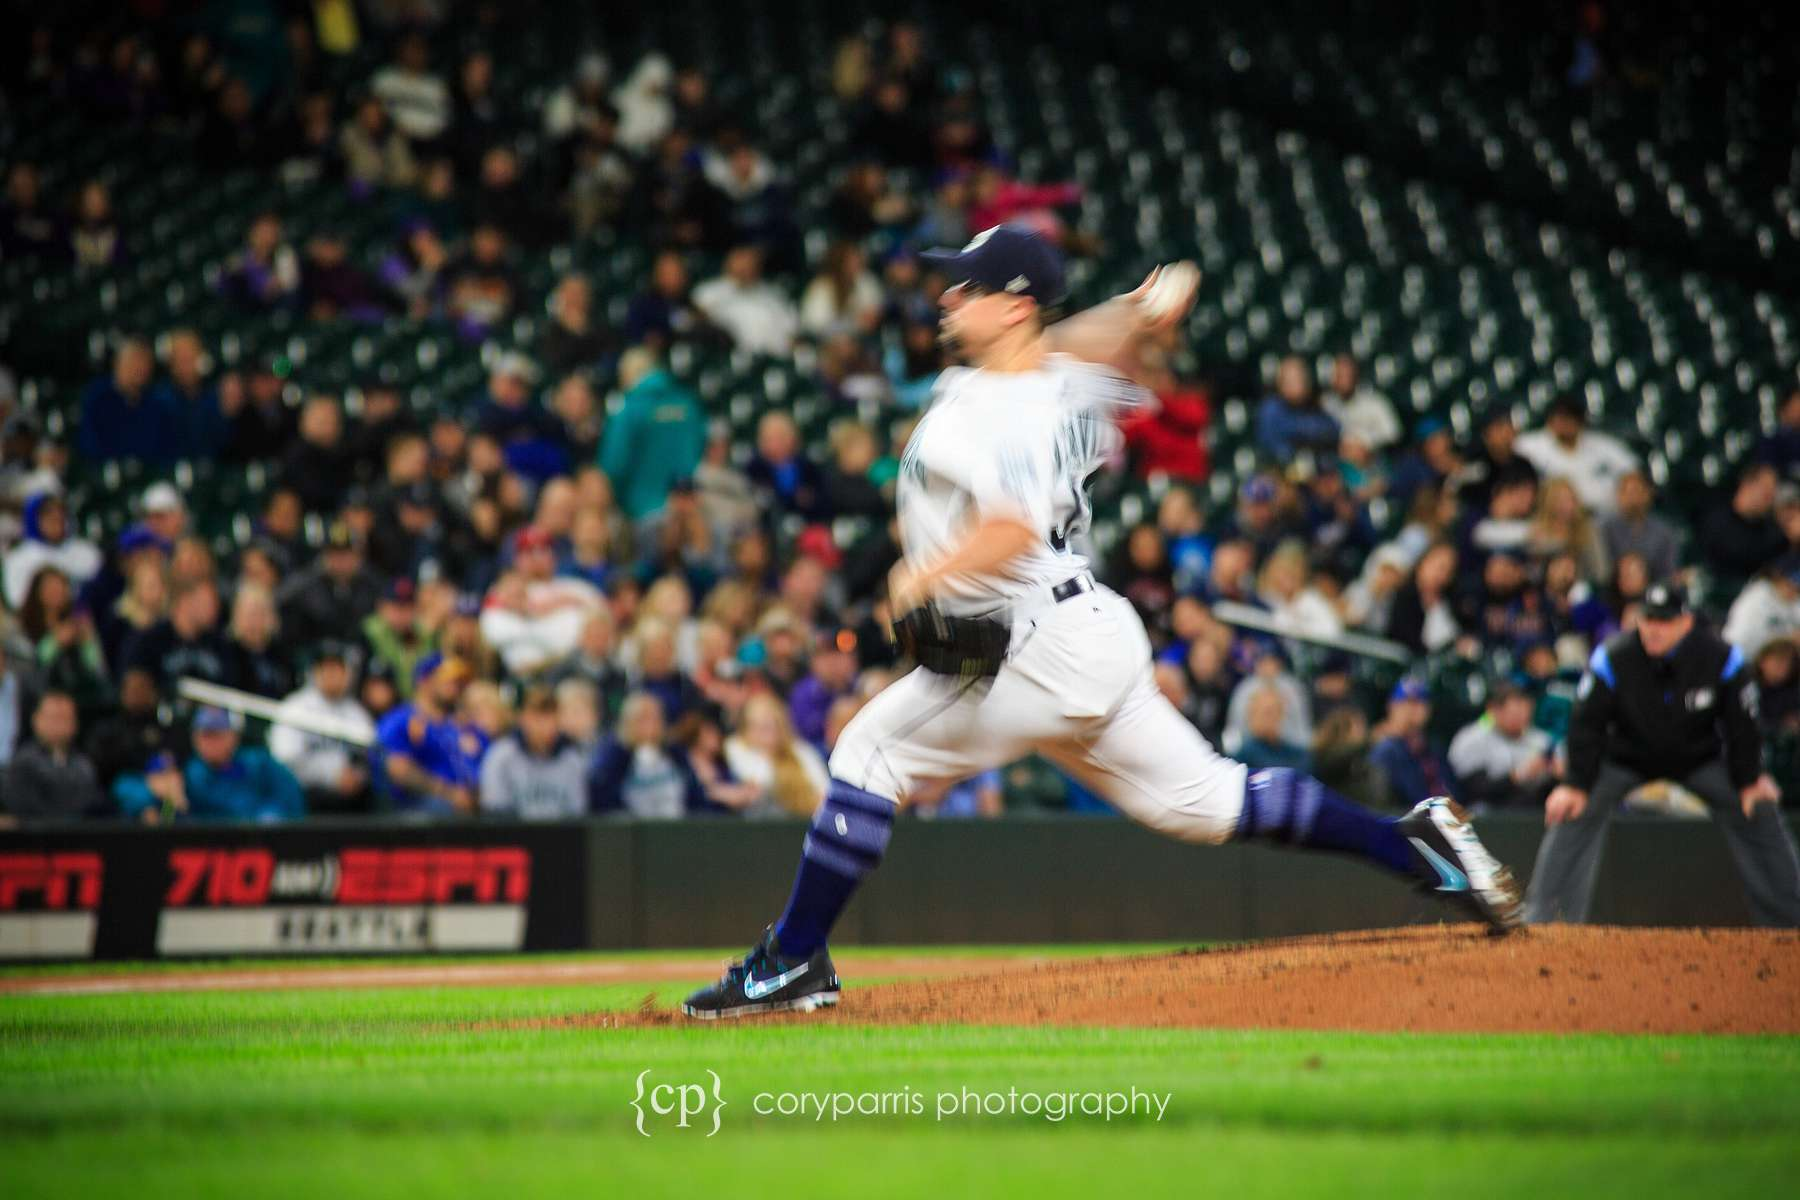 Slow shutter speed sports photography